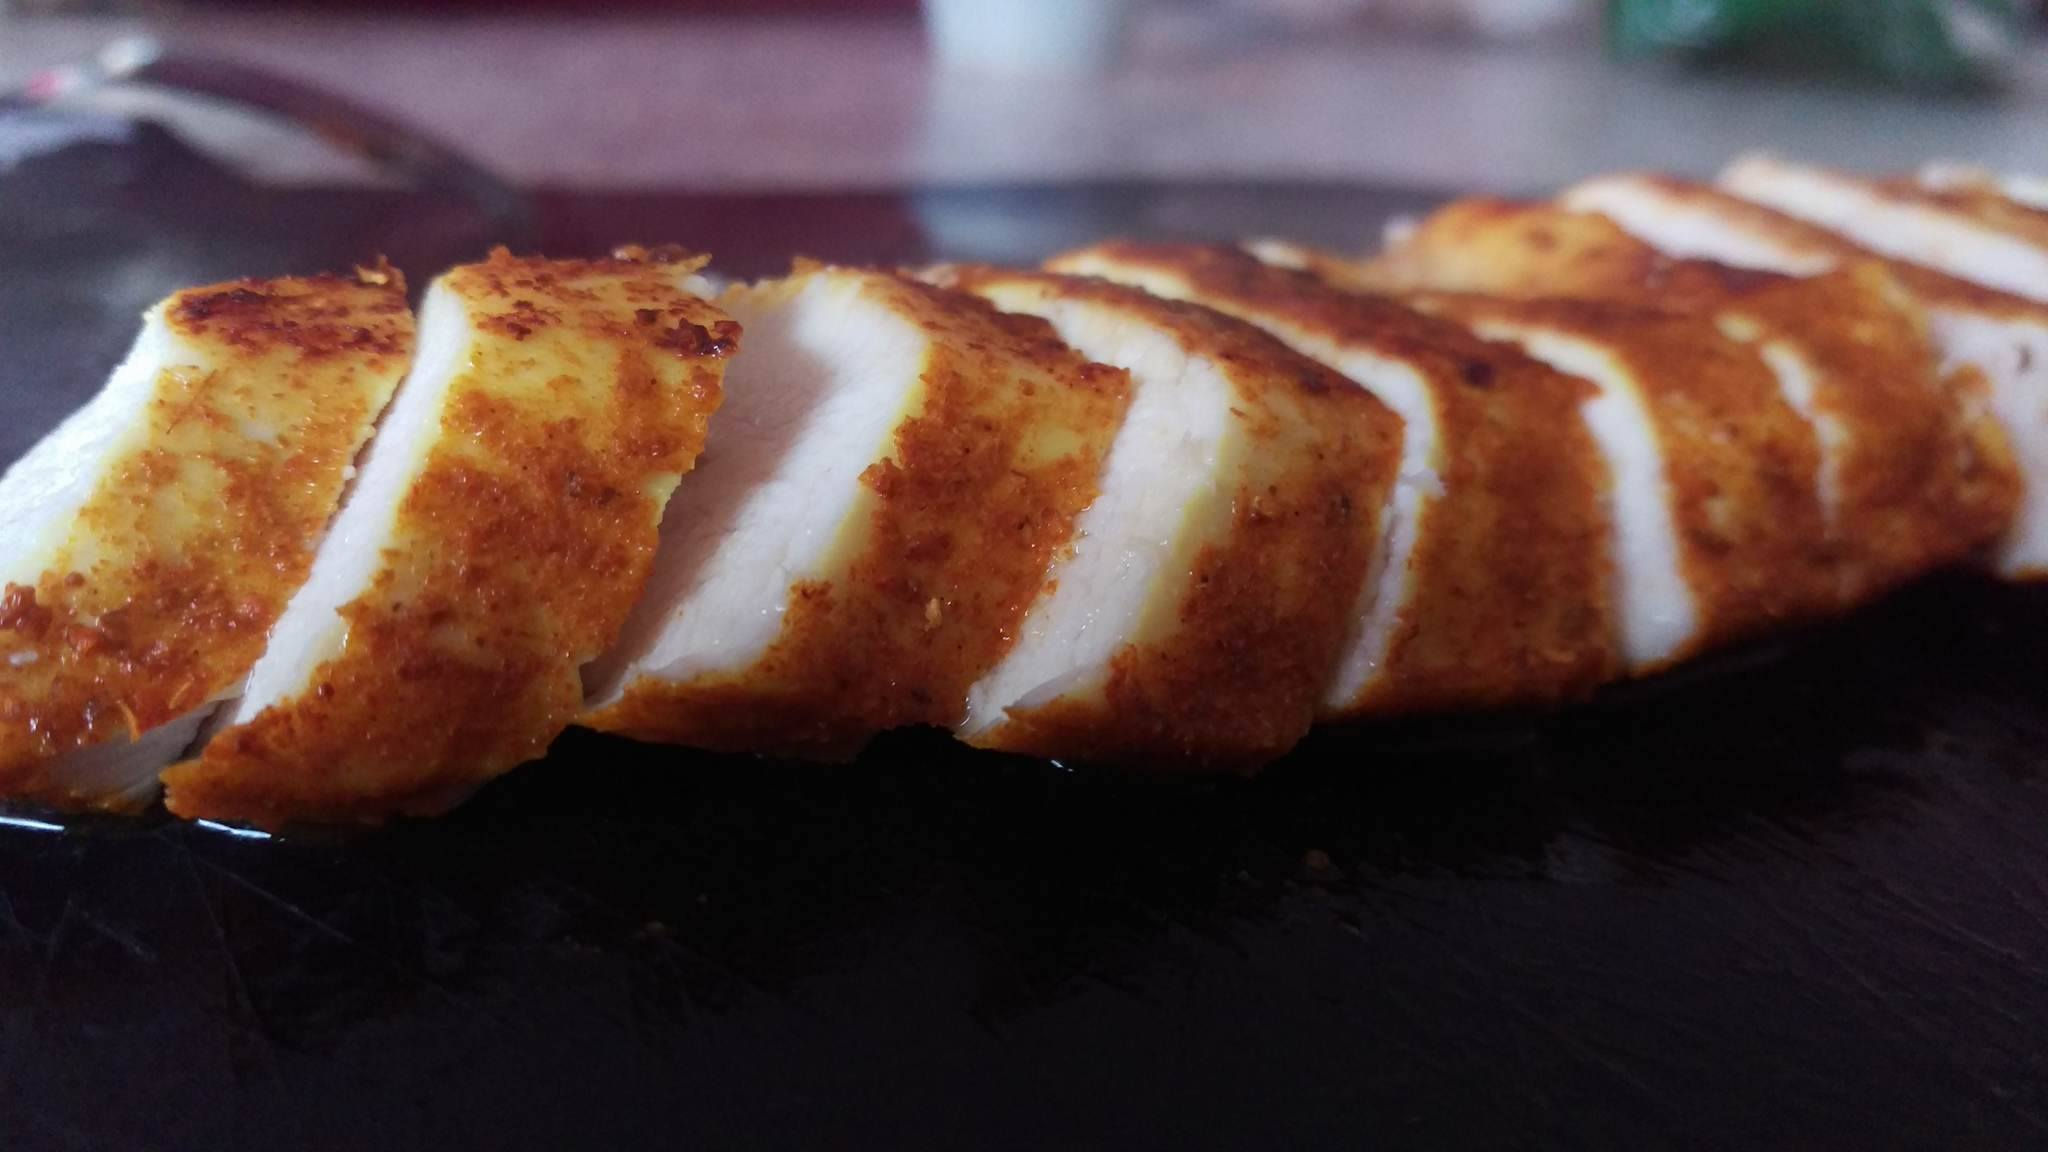 Thinly slice the chicken once cooked